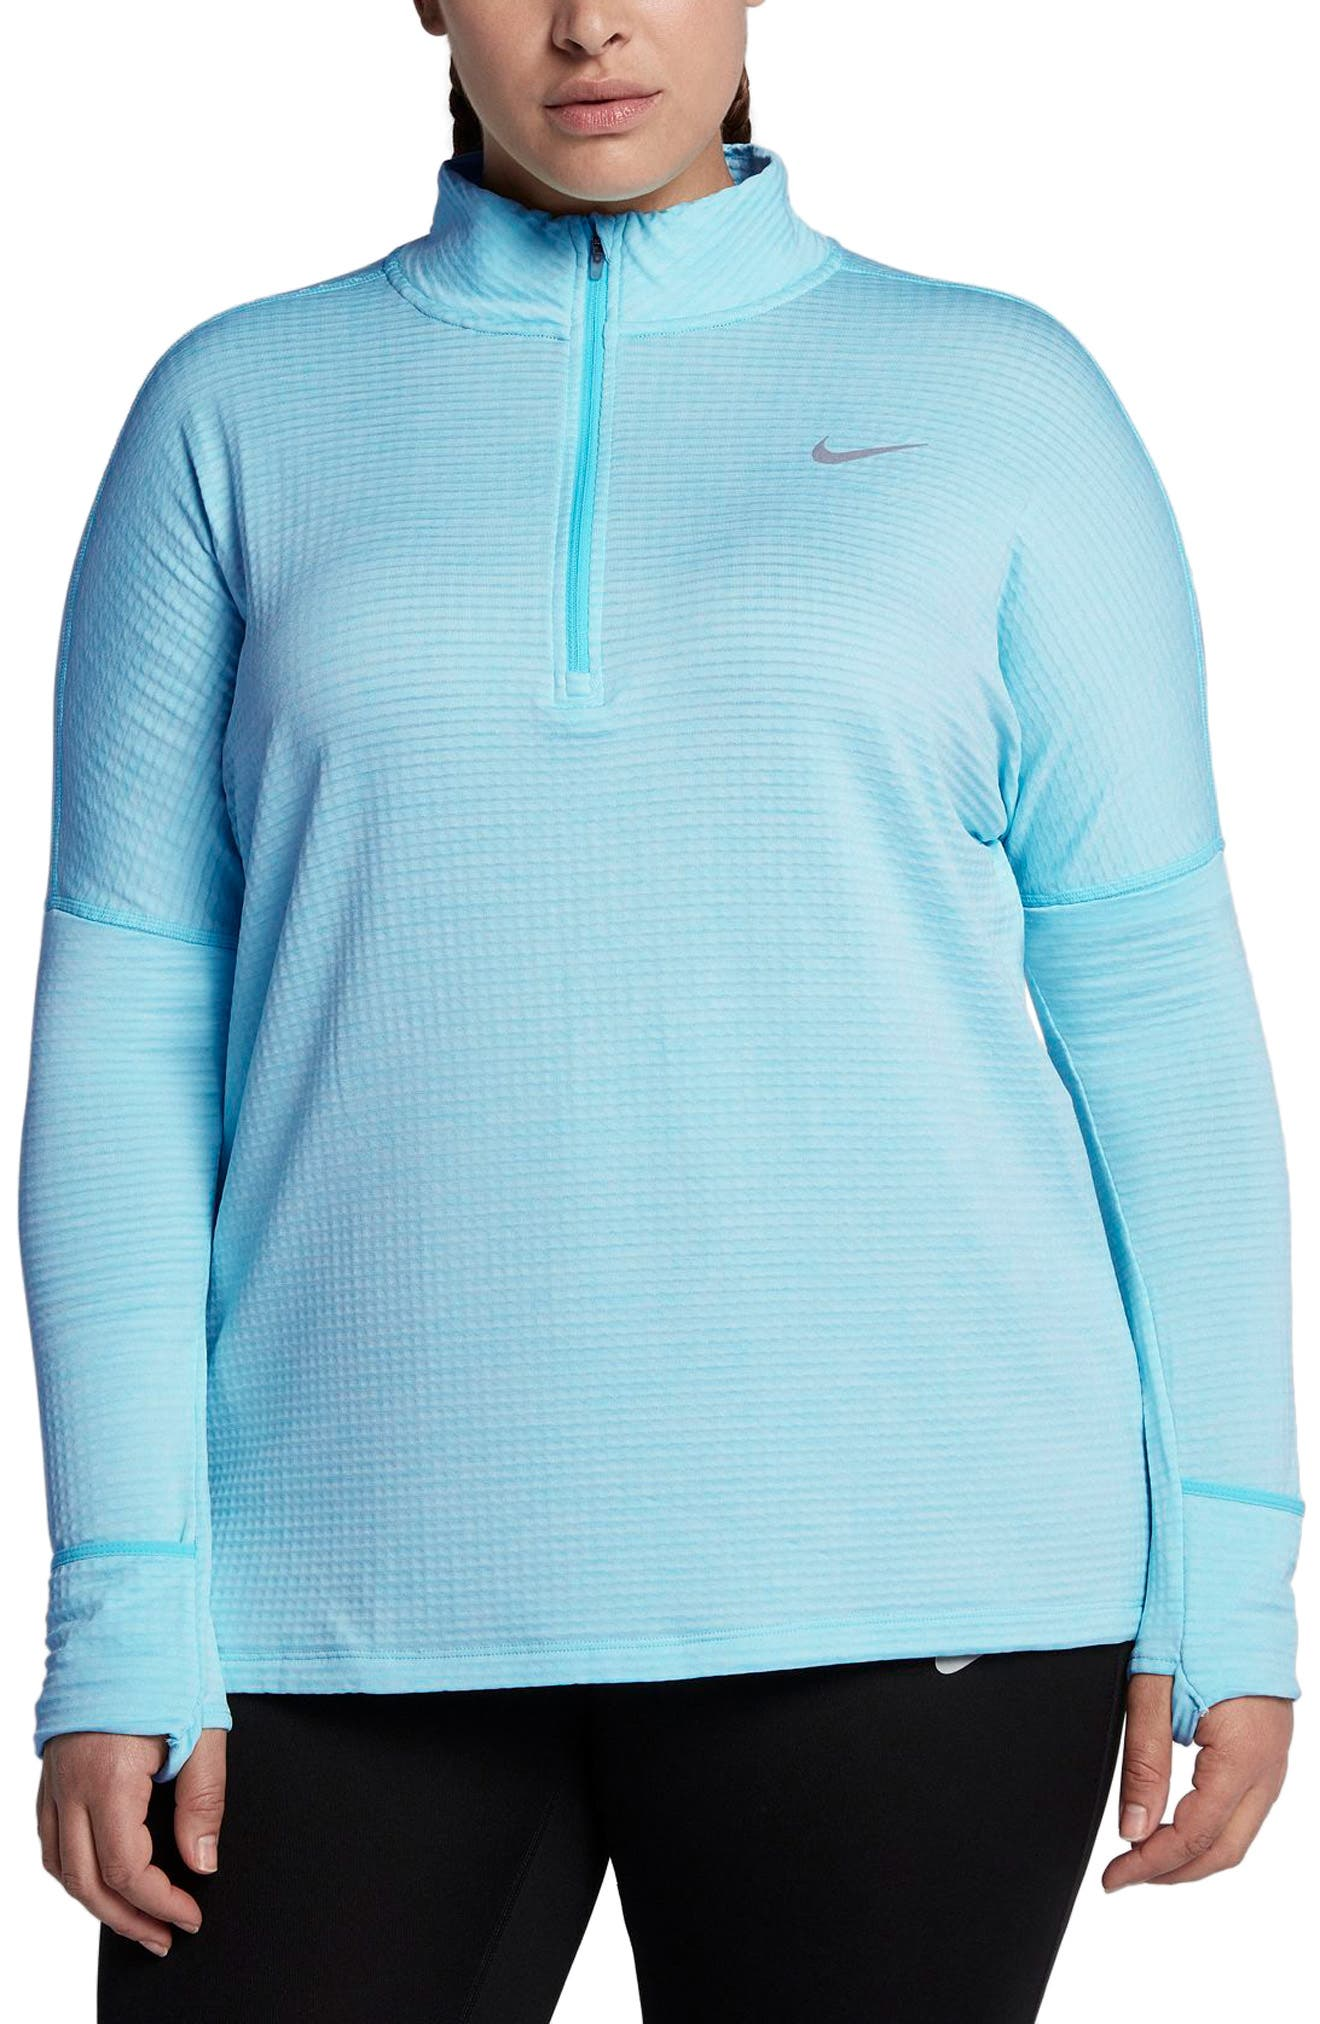 Sphere Element Long Sleeve Running Top,                             Main thumbnail 3, color,